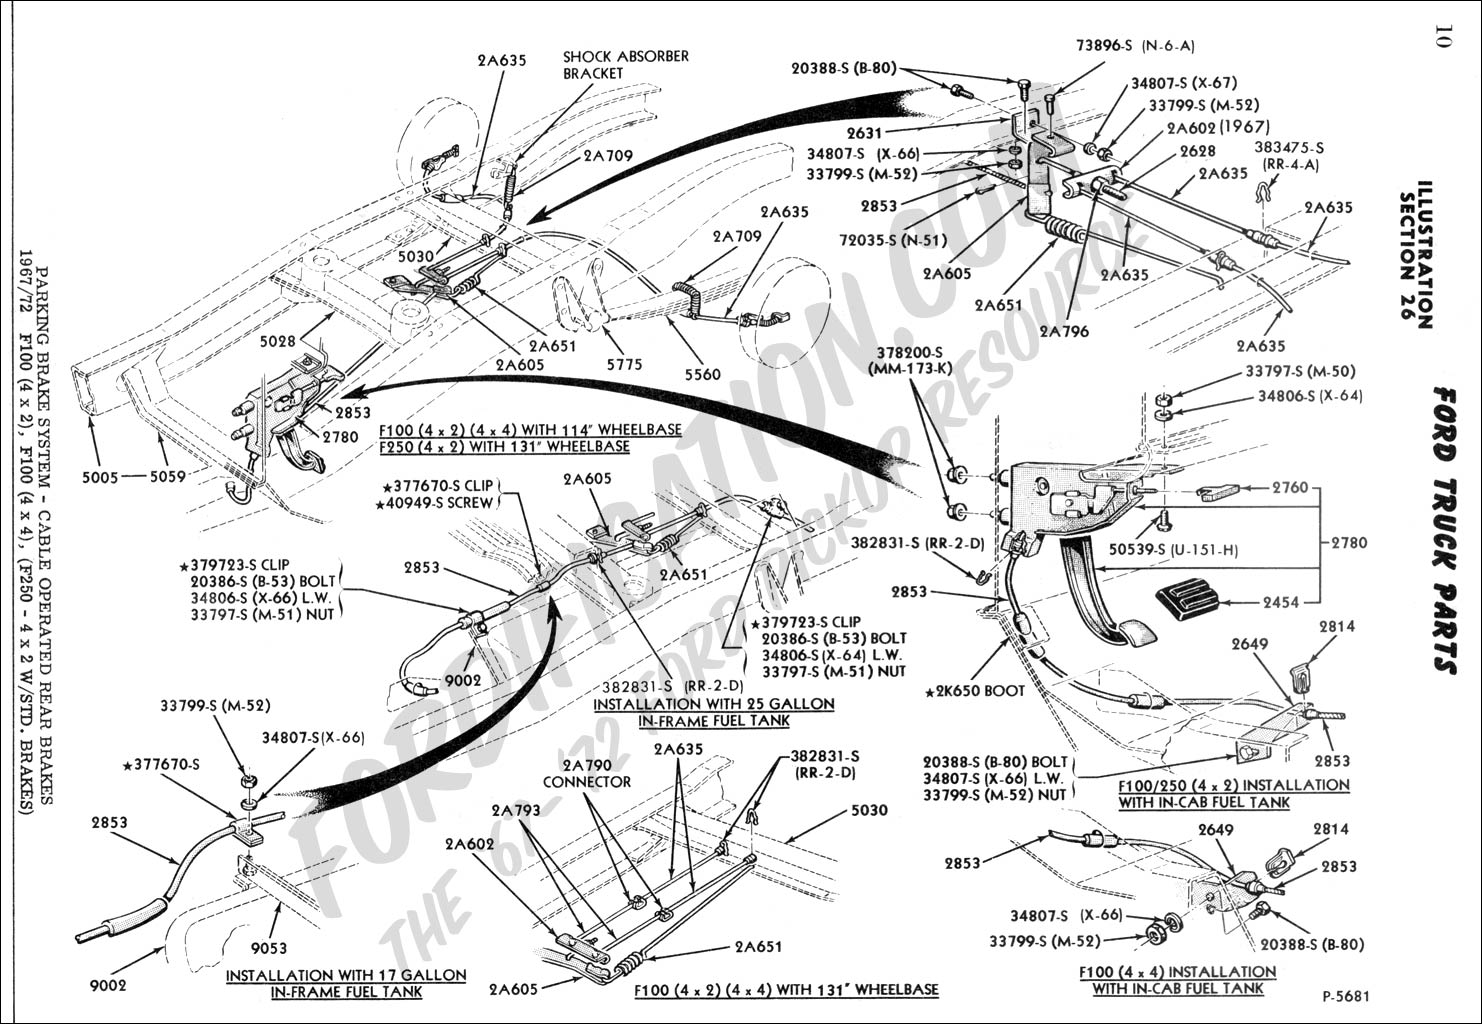 explorer wiring diagram pdf with 945365 Park Brake Cable Issues on Ford Focus Radio Wiring Diagram 2007 together with Post 2001 Mustang Parts Diagram 430607 additionally Wiring Diagram For A 2005 Mercury Mountaineer additionally Schematics b further Ford Explorer 2001 Power Seats Wiring Diagram.